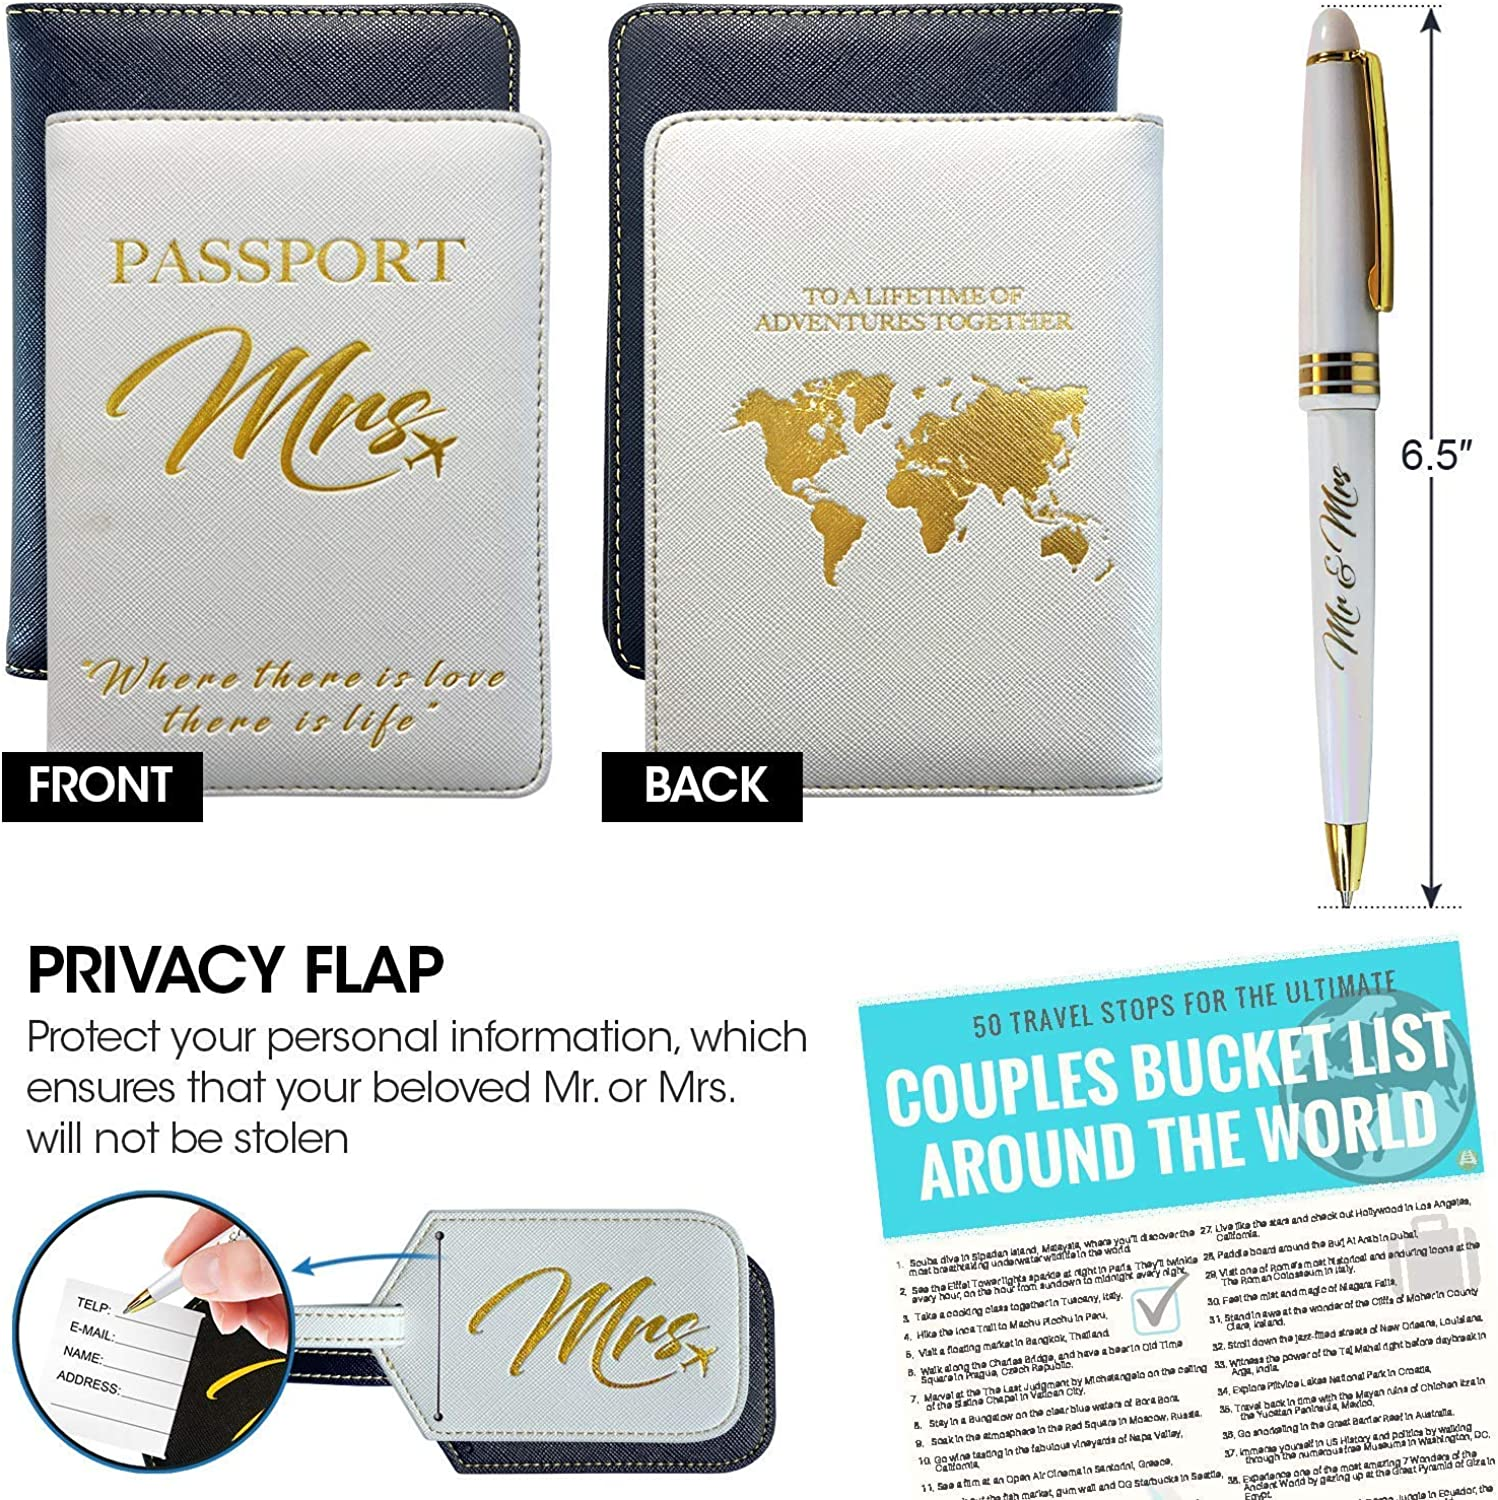 Honeymoon luggage mr and mrs luggage tags and passport holder memorable bridal shower giftsWedding gifts for coupleEngagement gi